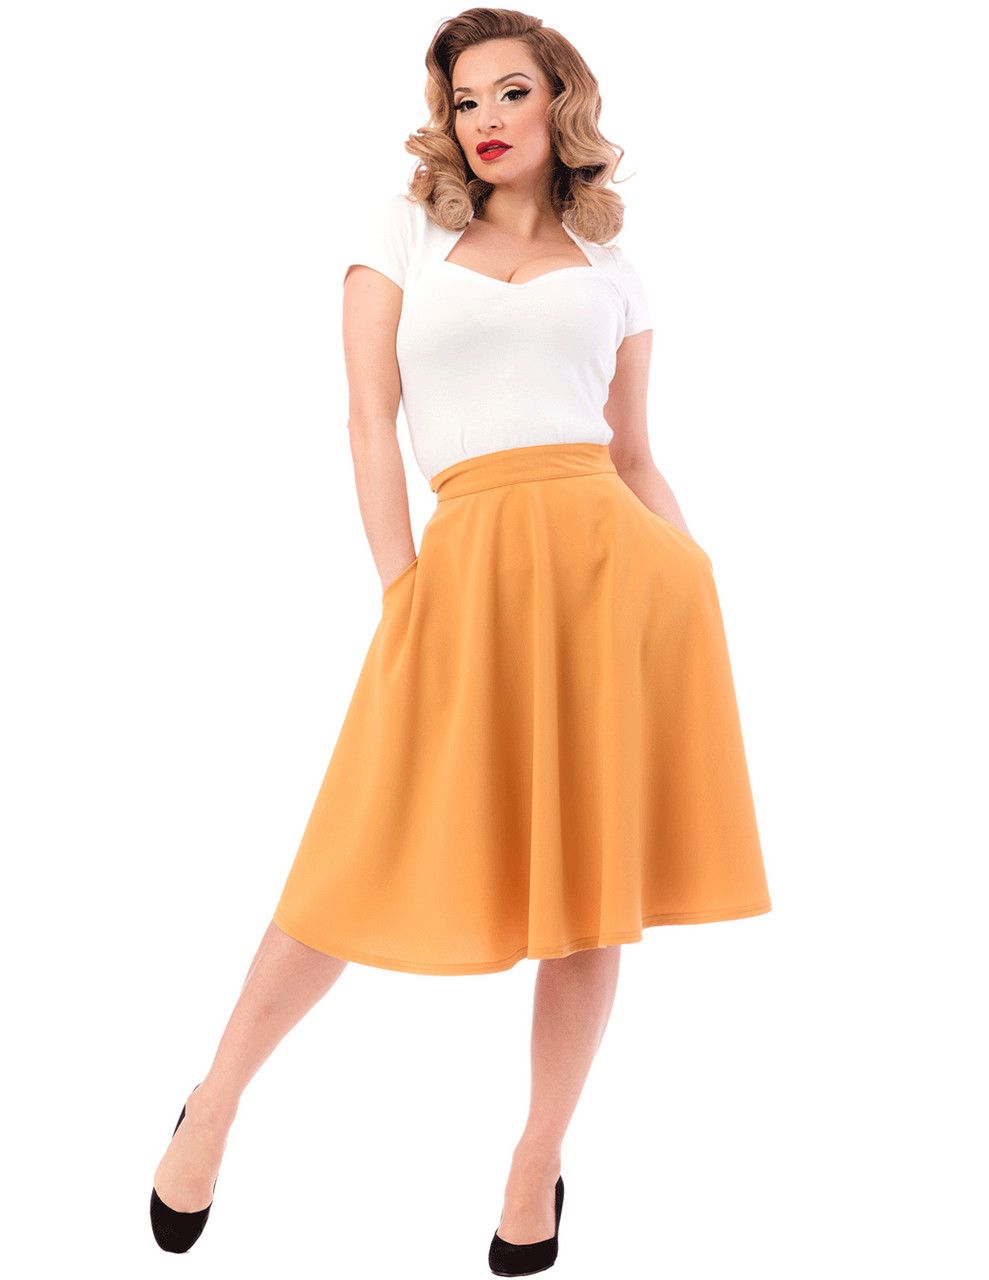 8a6185128 Mustard High Waist Thrills Skirt with Pockets by Steady Clothing